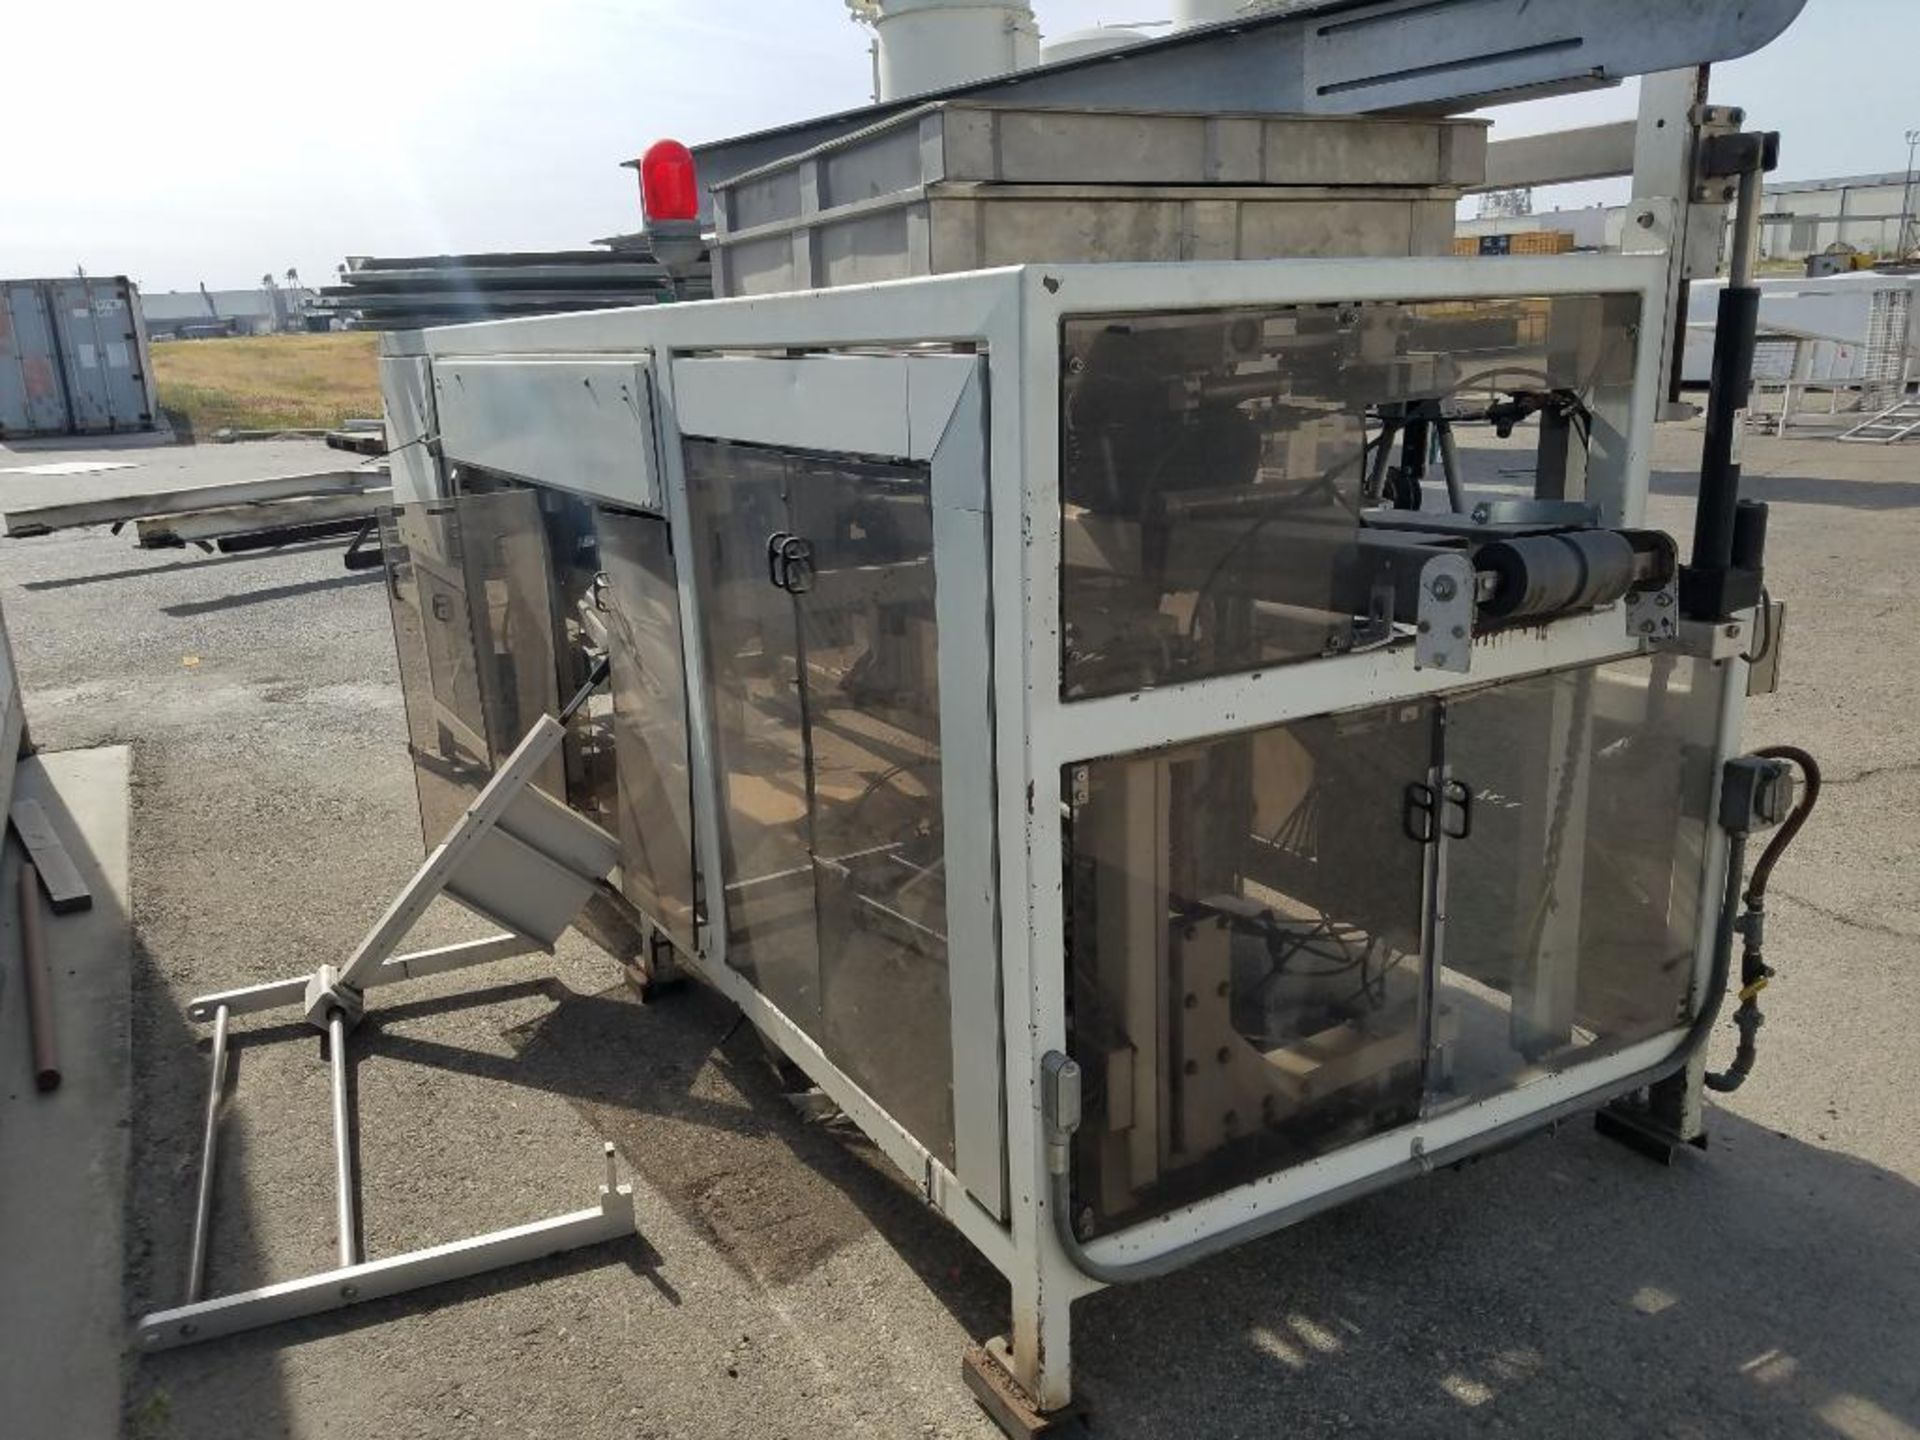 blower diverter with frame, aluminum mezzanine, steam washer, and Fallas cartoner - Image 8 of 13